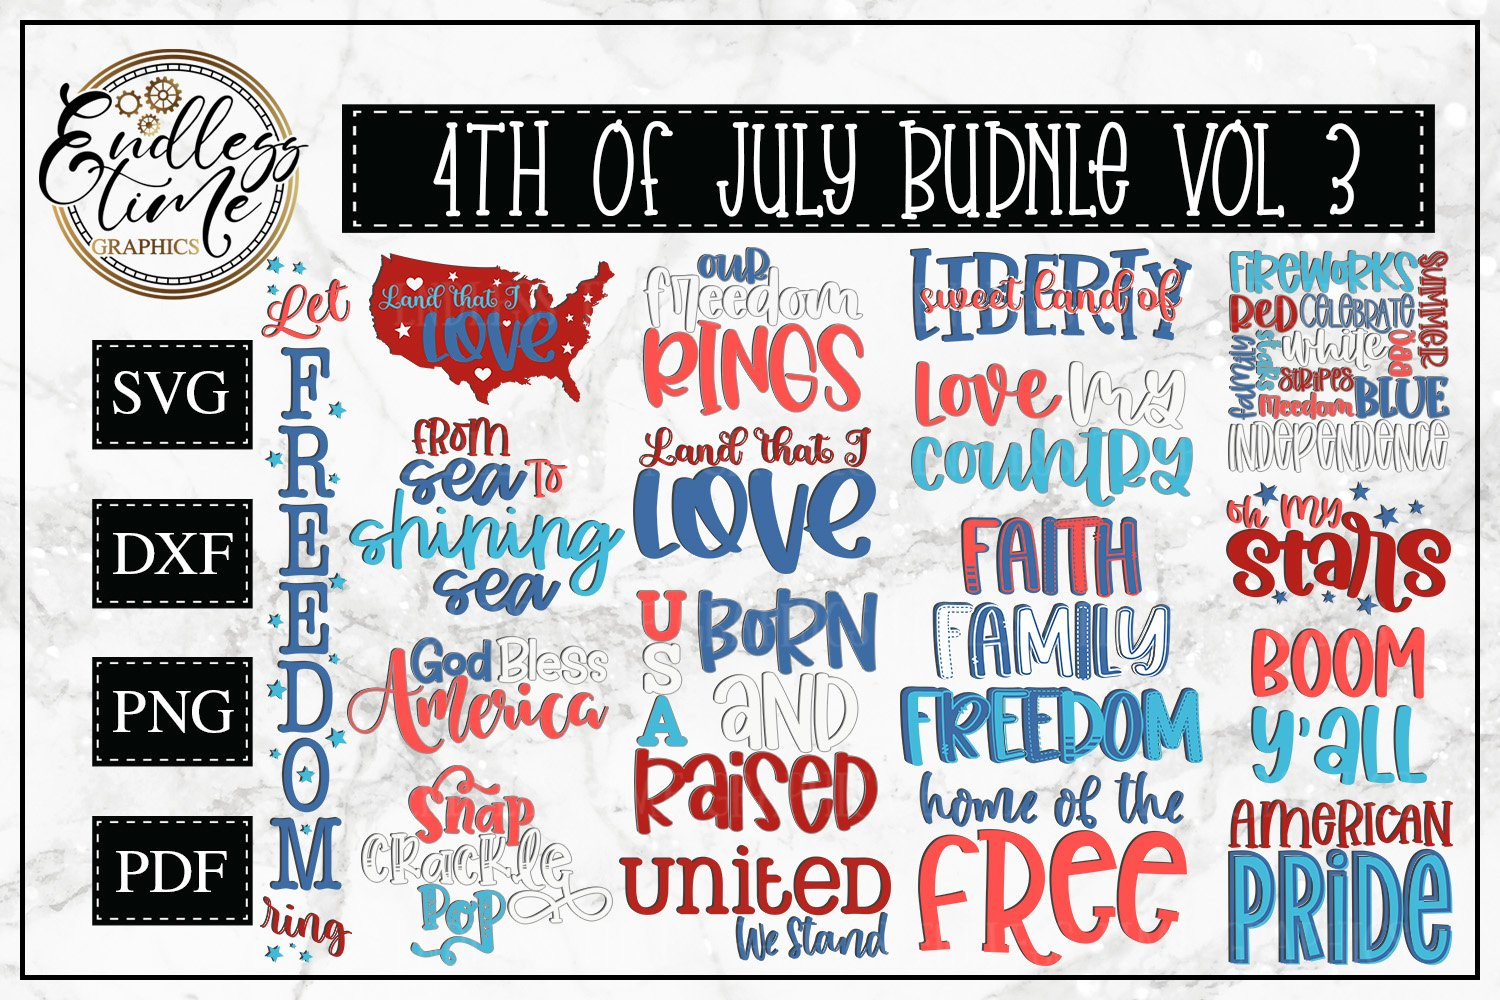 4th of July Bundle Volume 3 | A Red White & Blue SVG Bundle example image 1